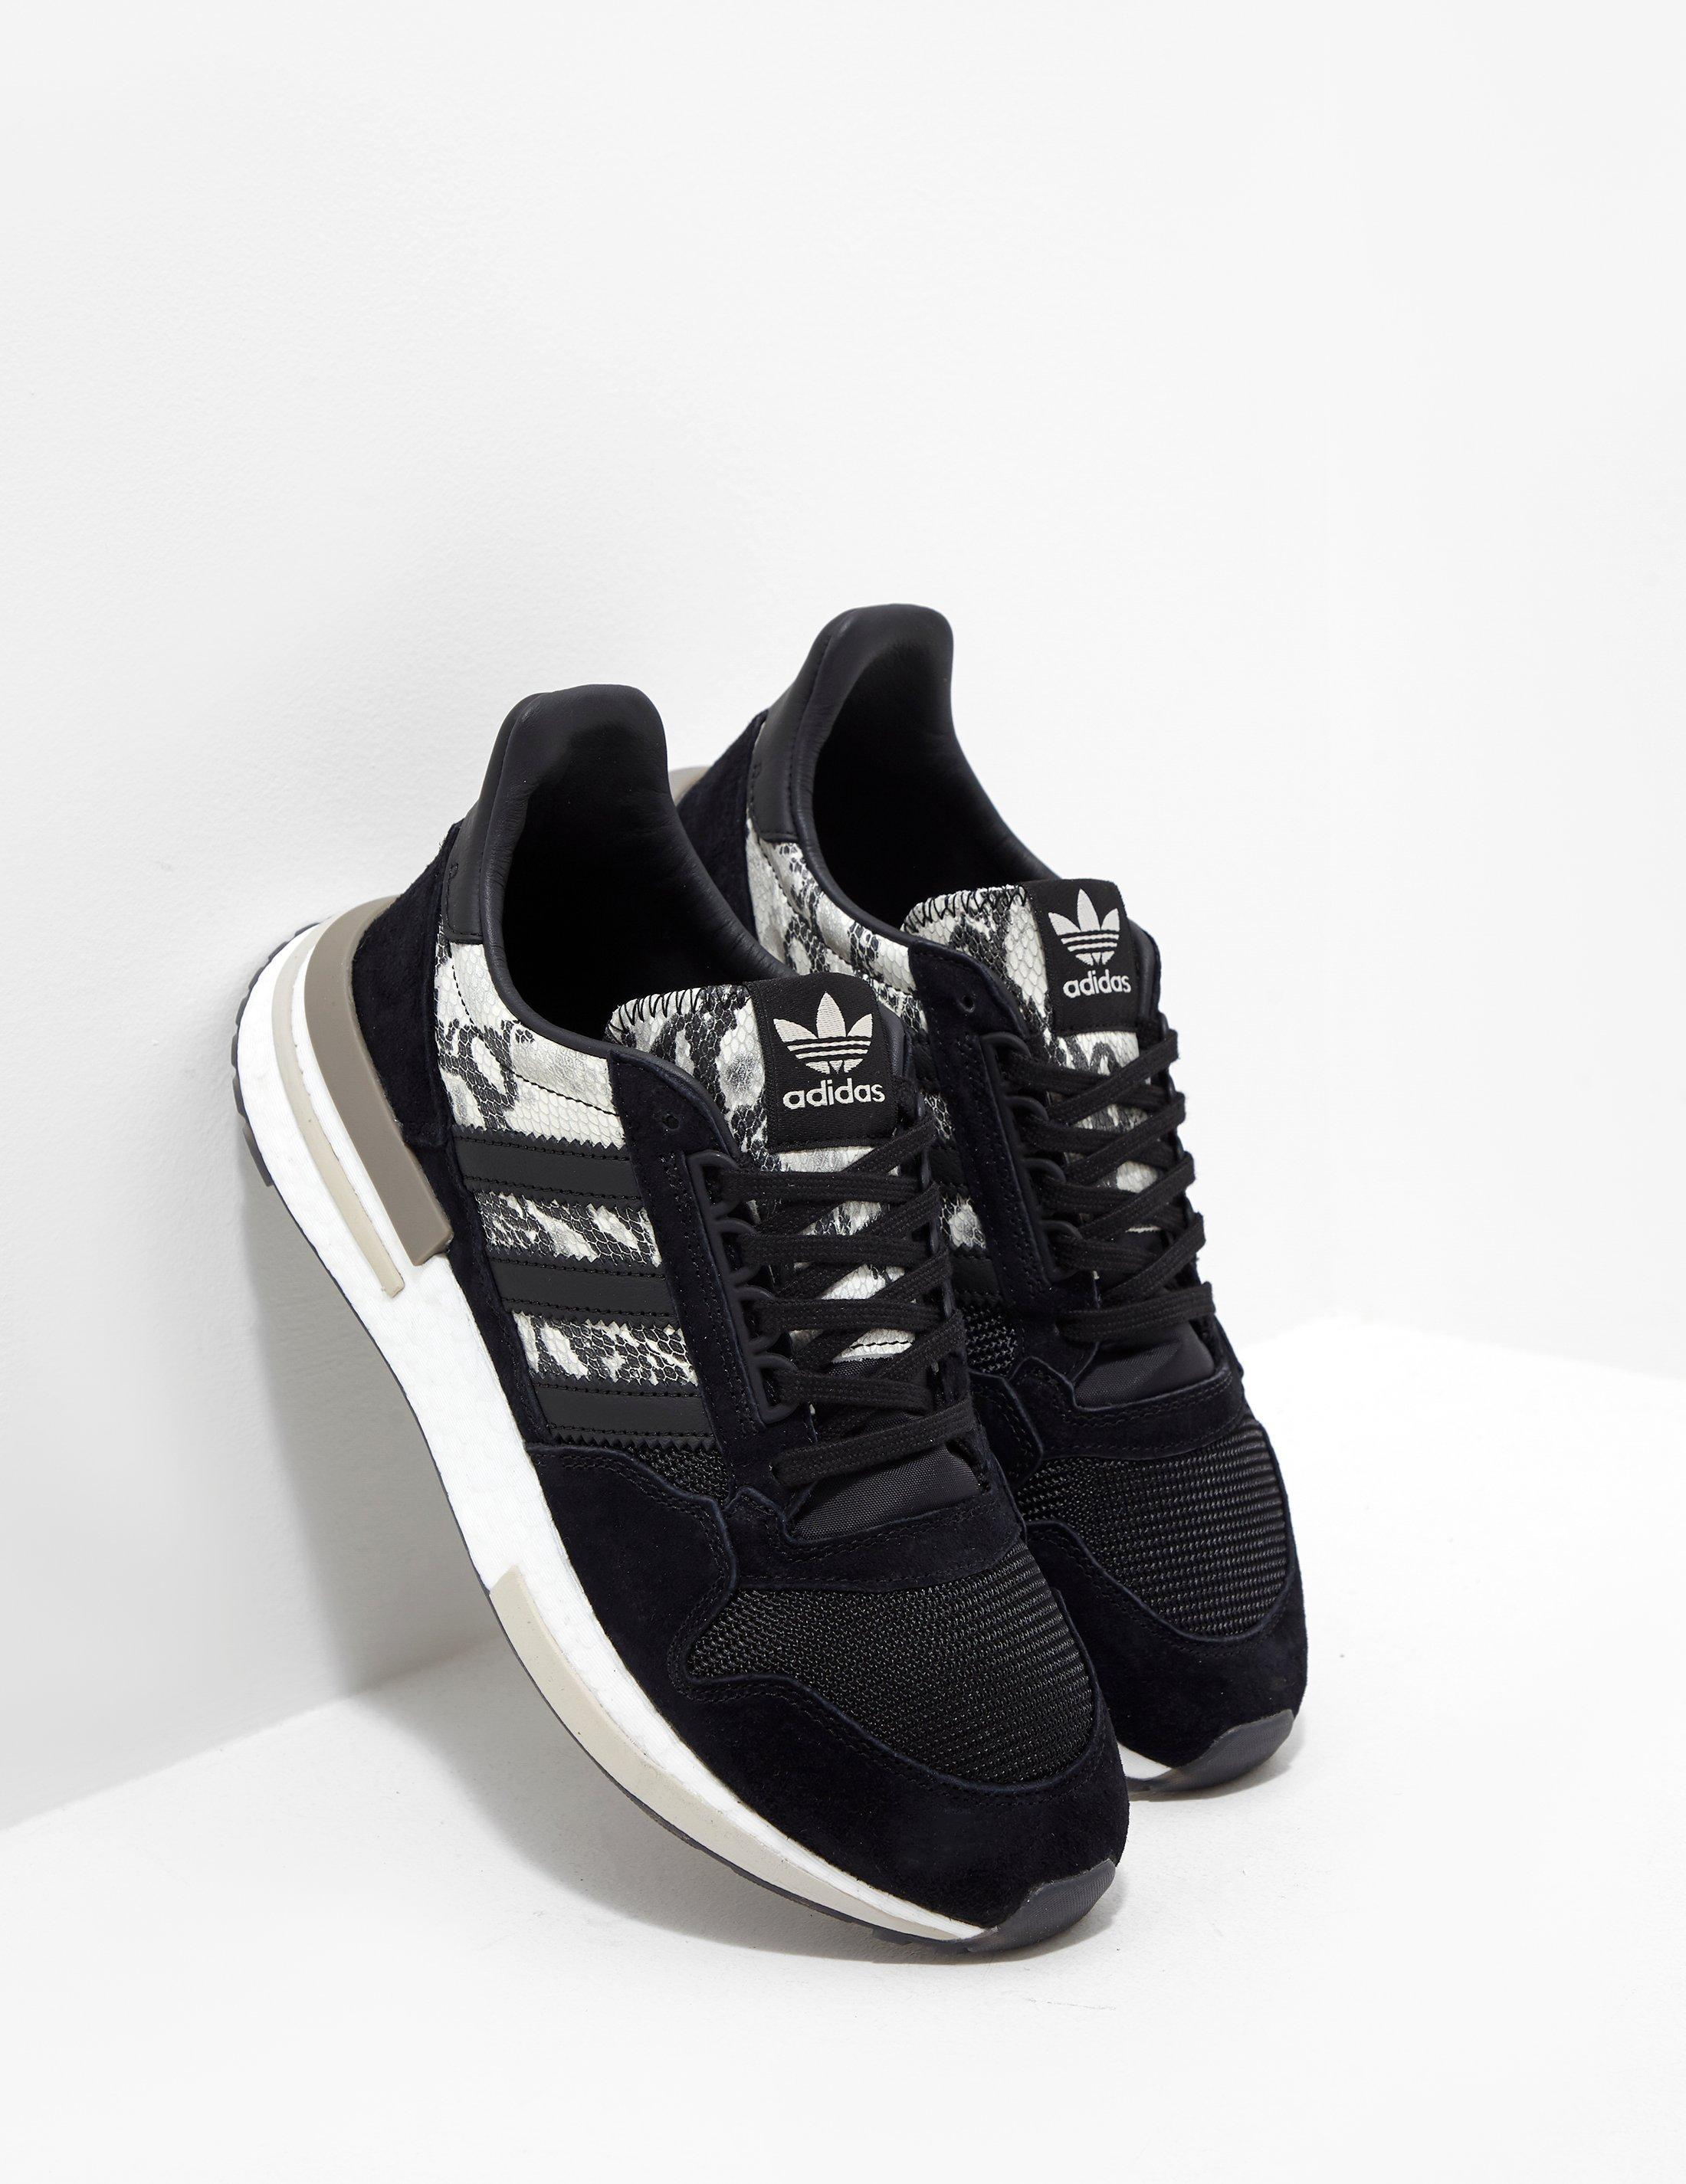 meet e0900 c890a adidas Originals. Men s Zx 500 Rm Black